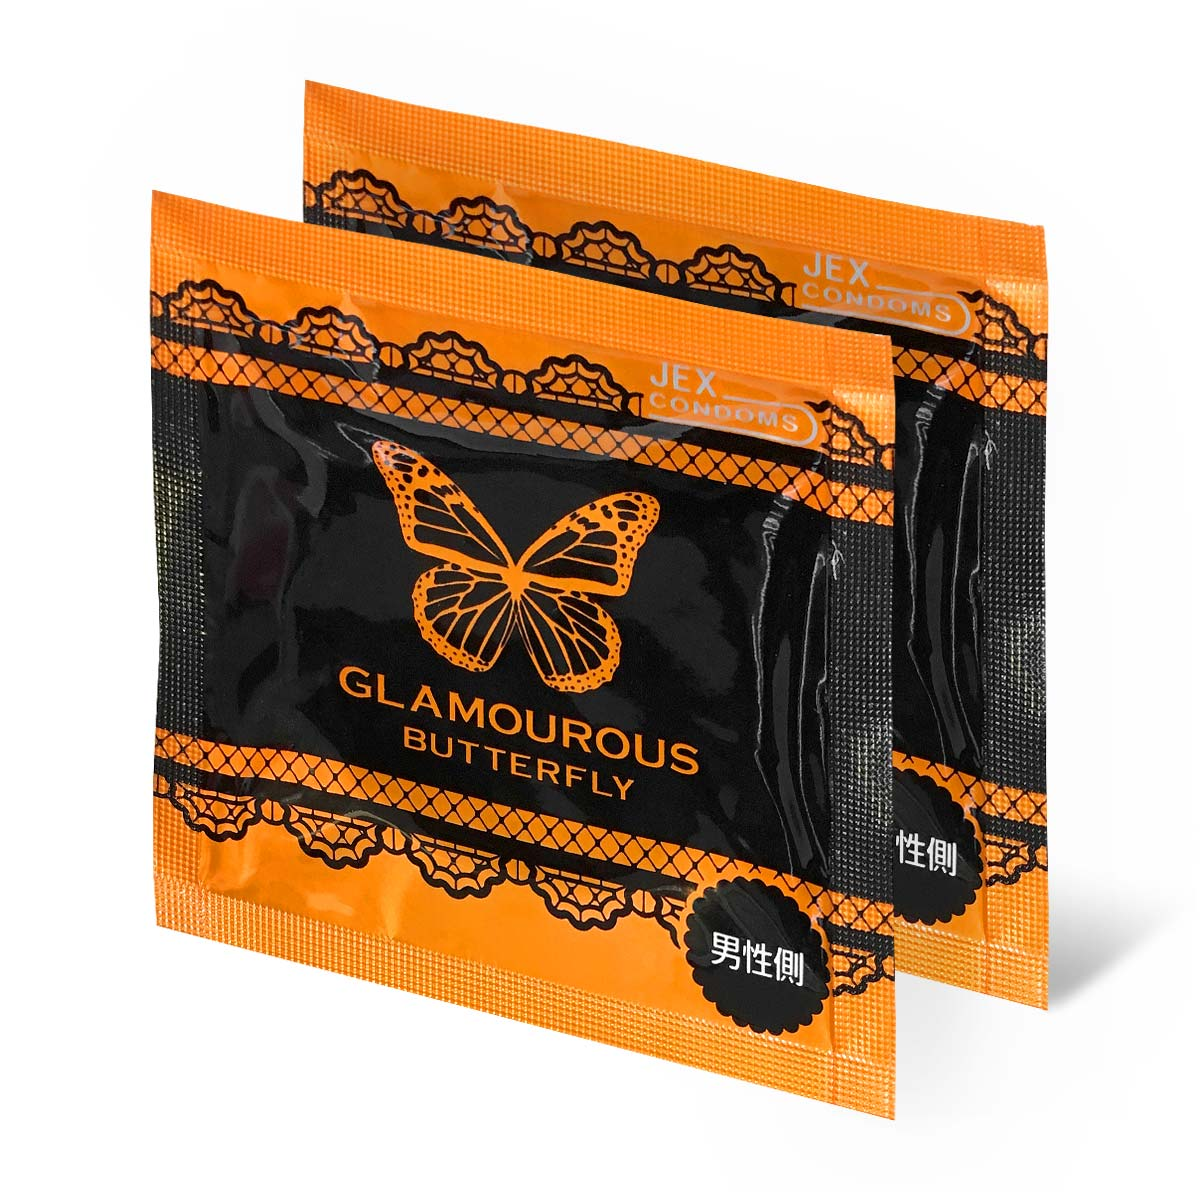 Glamourous Butterfly Large Size 55mm 2 pieces Latex Condom